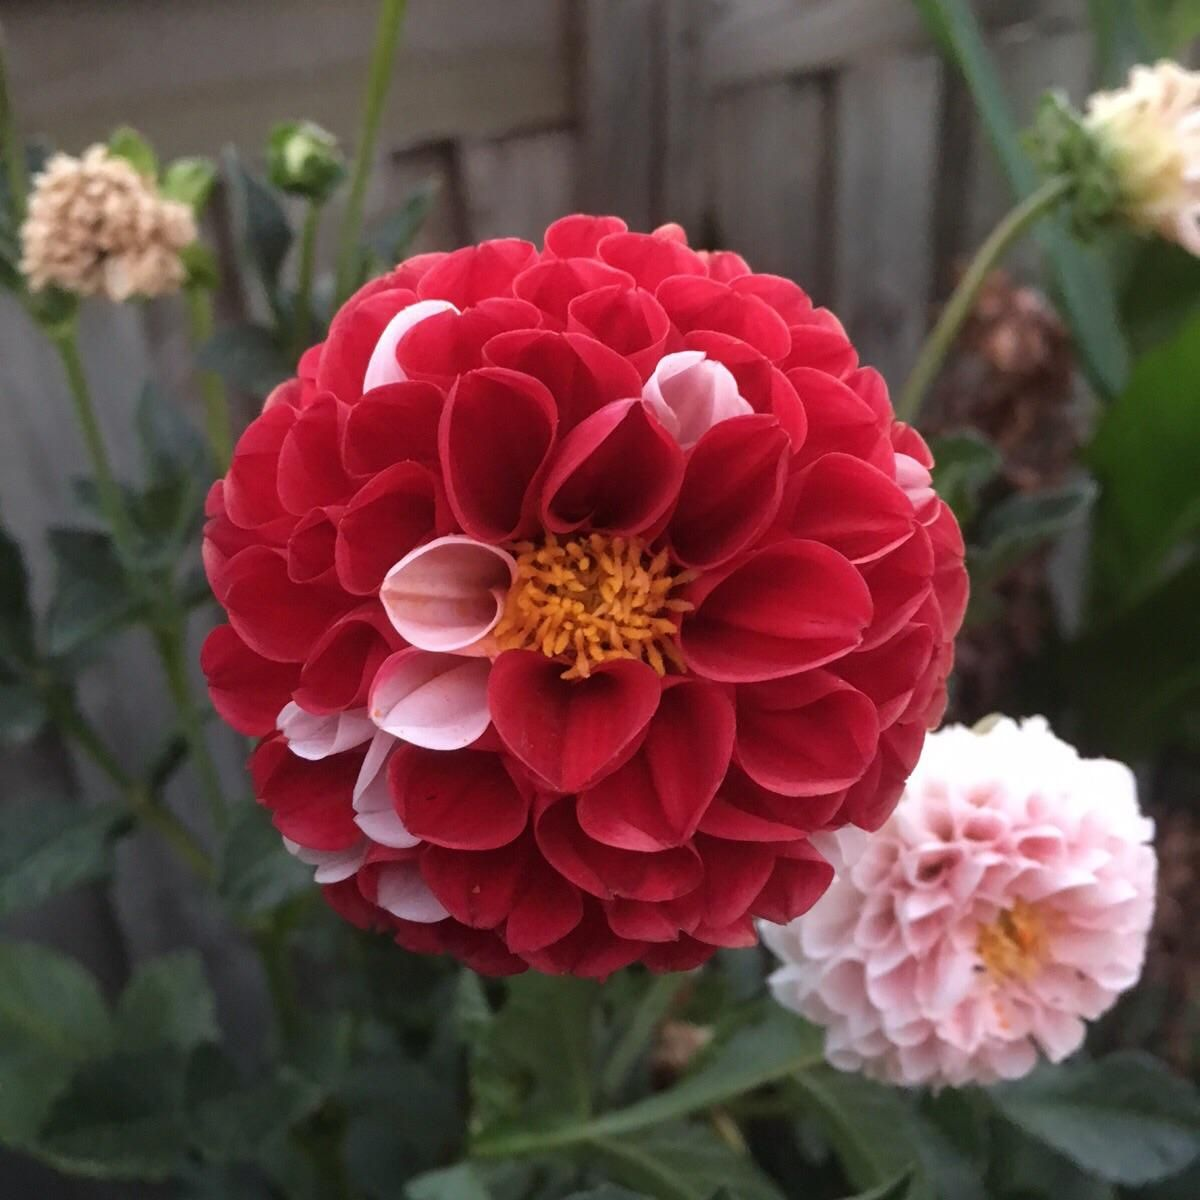 This Red And White Dahlia Clumsy Perfectionist Gardening Garden Diy Home Flowers Roses Nature Landscaping Hortic White Dahlias Flowers Red And White